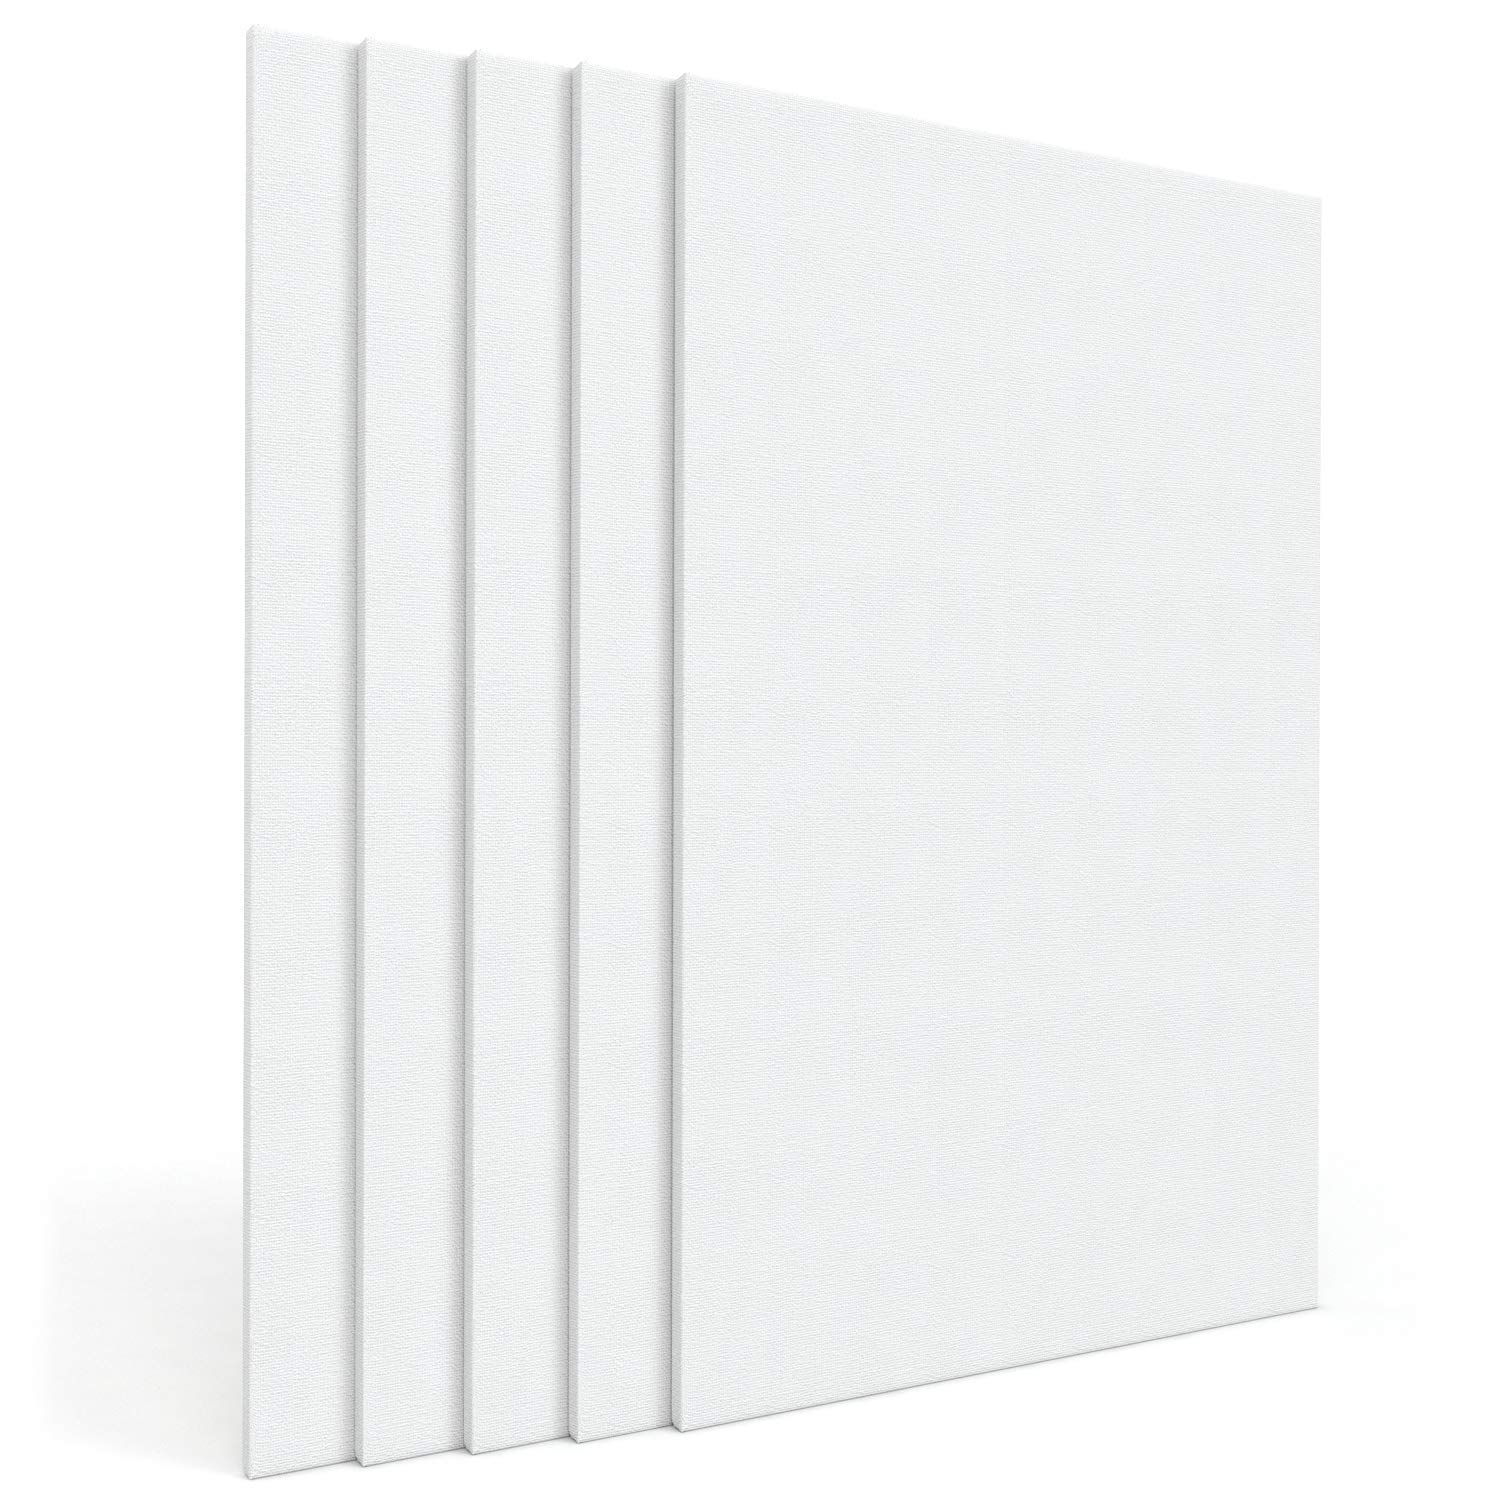 """Arteza 24x36"""" Stretched White Blank Canvas, Bulk Pack of 5, Primed, 100% Cotton for Painting, Acrylic Pouring, Oil Paint & Wet Art Media, Canvases for Professional Artist, Hobby Painters & Beginner by ARTEZA (Image #4)"""